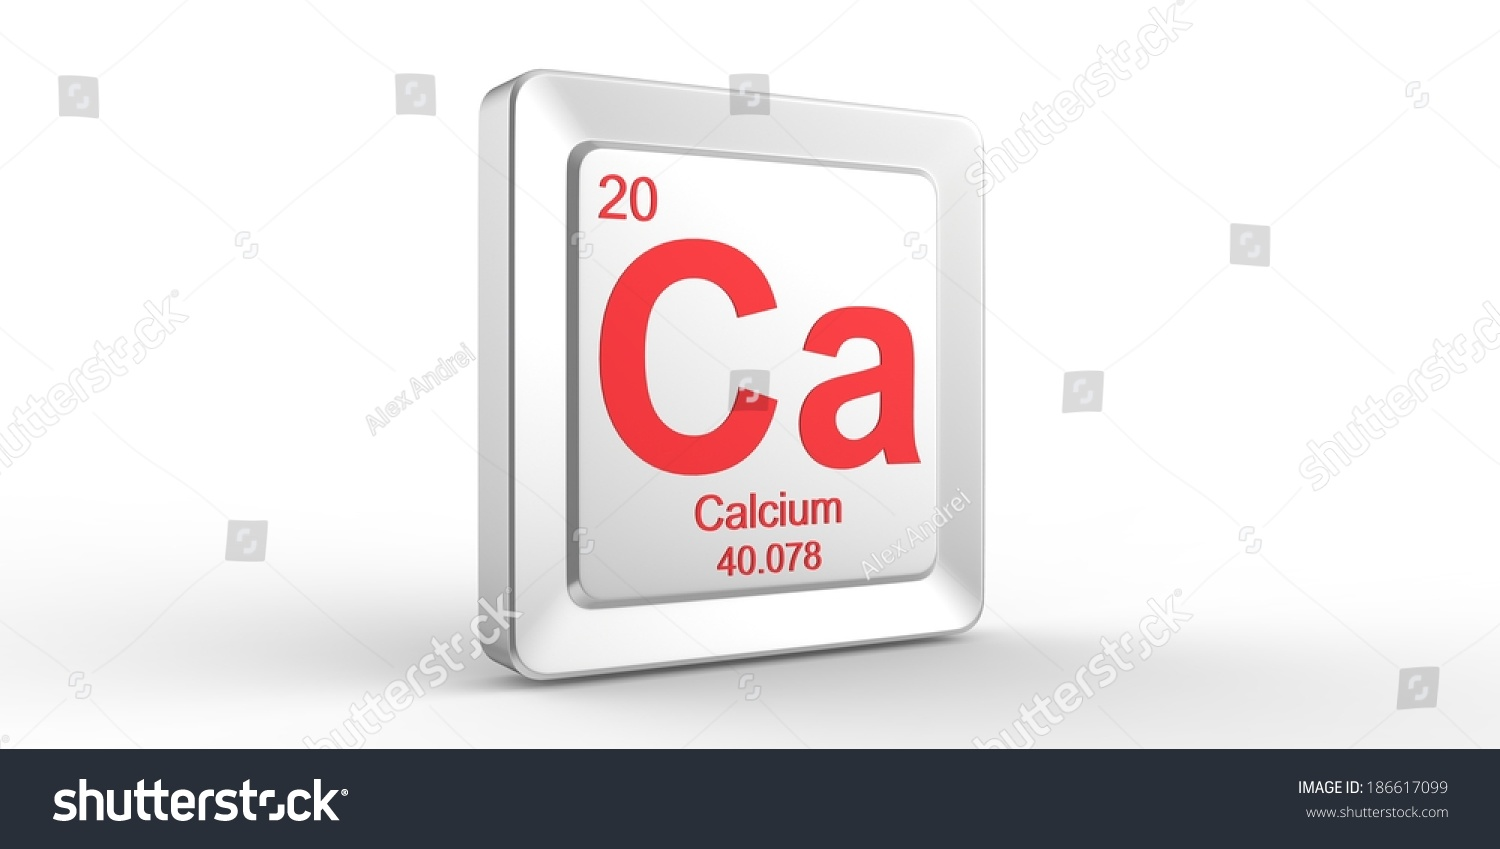 Calcium element symbol gallery symbol and sign ideas ca symbol 20 material calcium chemical stock illustration ca symbol 20 material for calcium chemical element buycottarizona